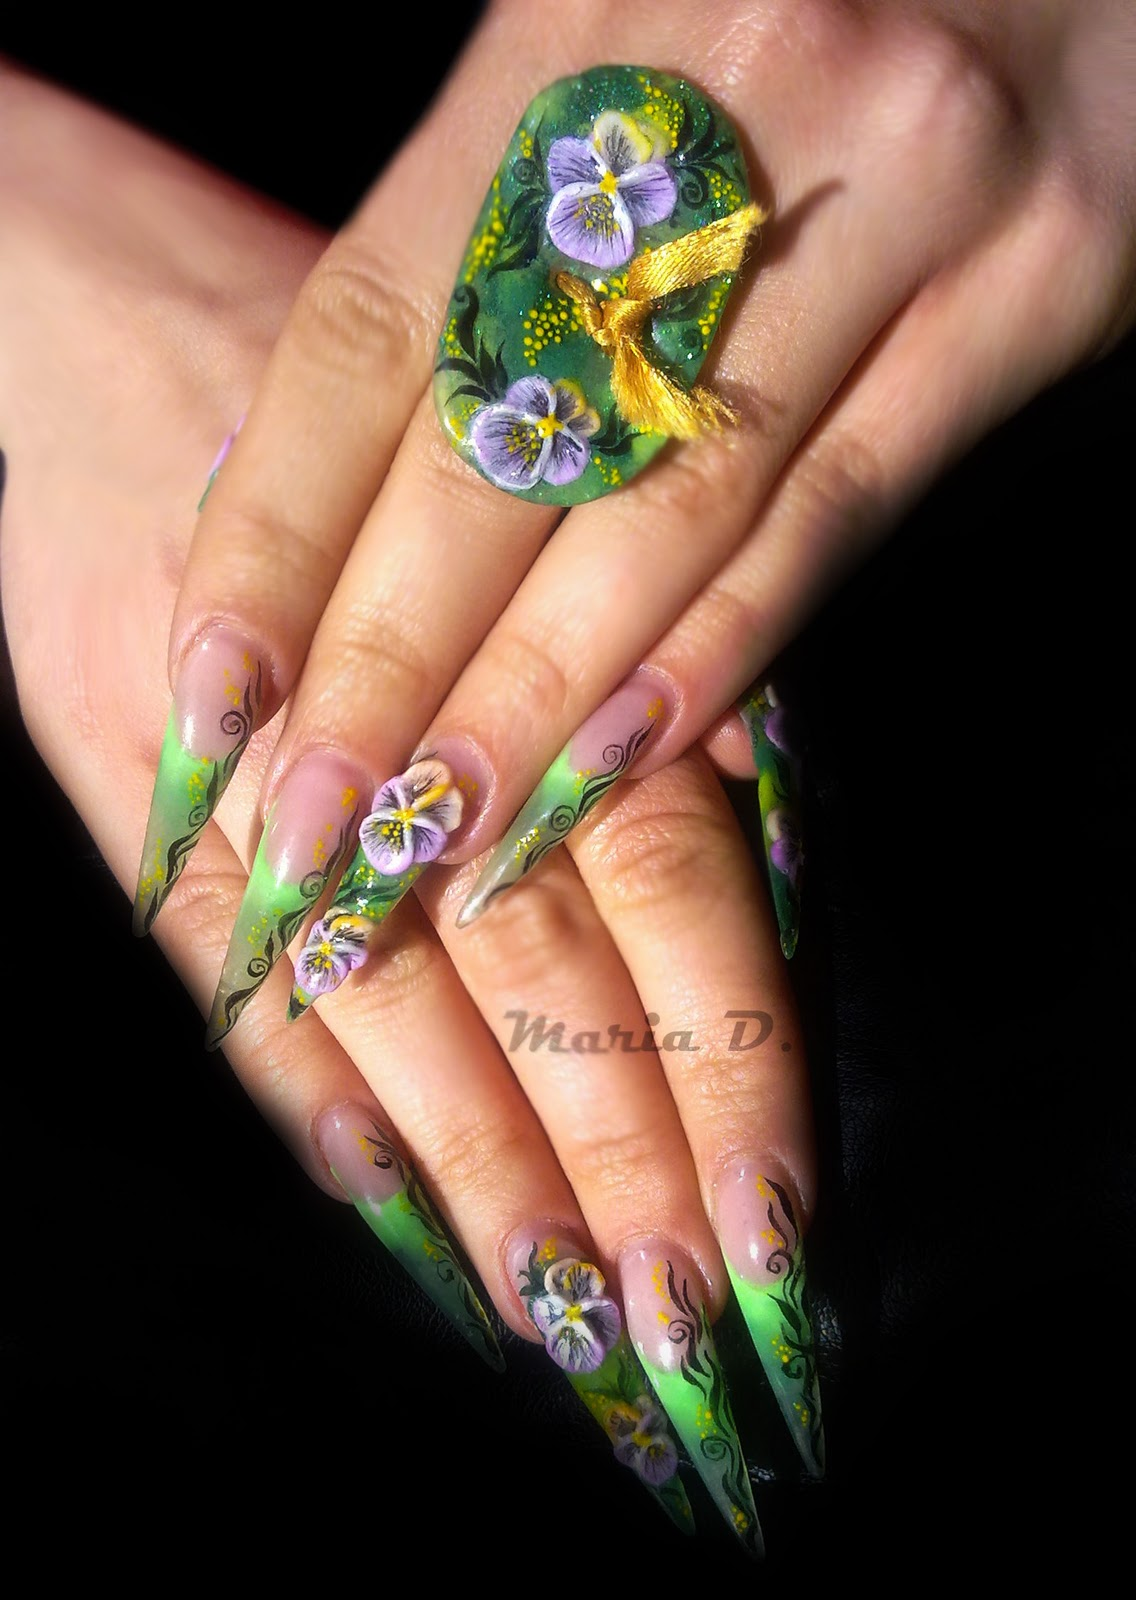 Nail art: Stiletto nail art designs